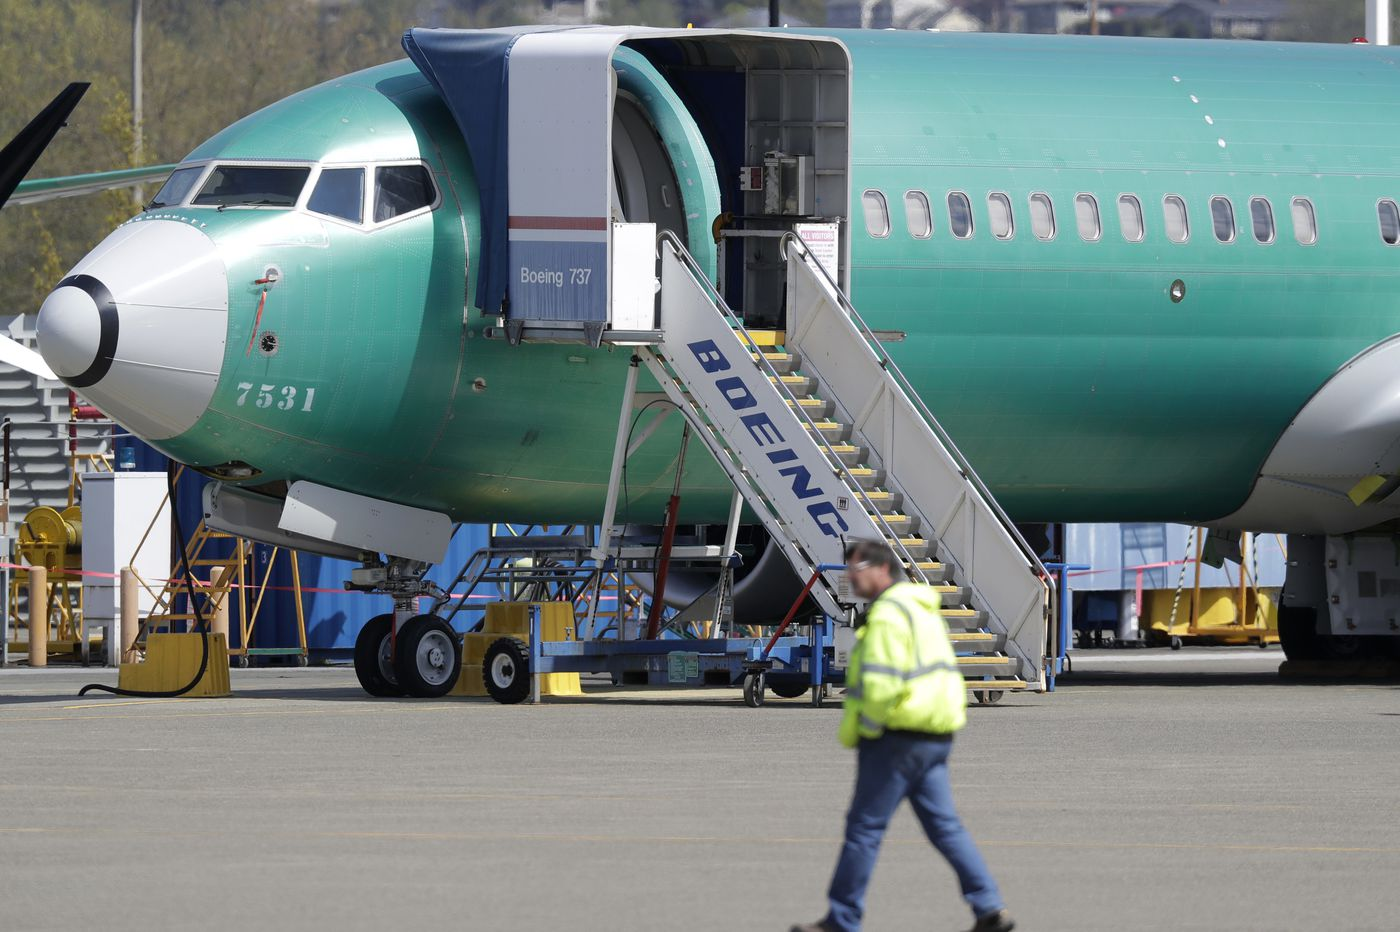 Text messages show Boeing employees knew in 2016 of problems that turned deadly on the 737 Max